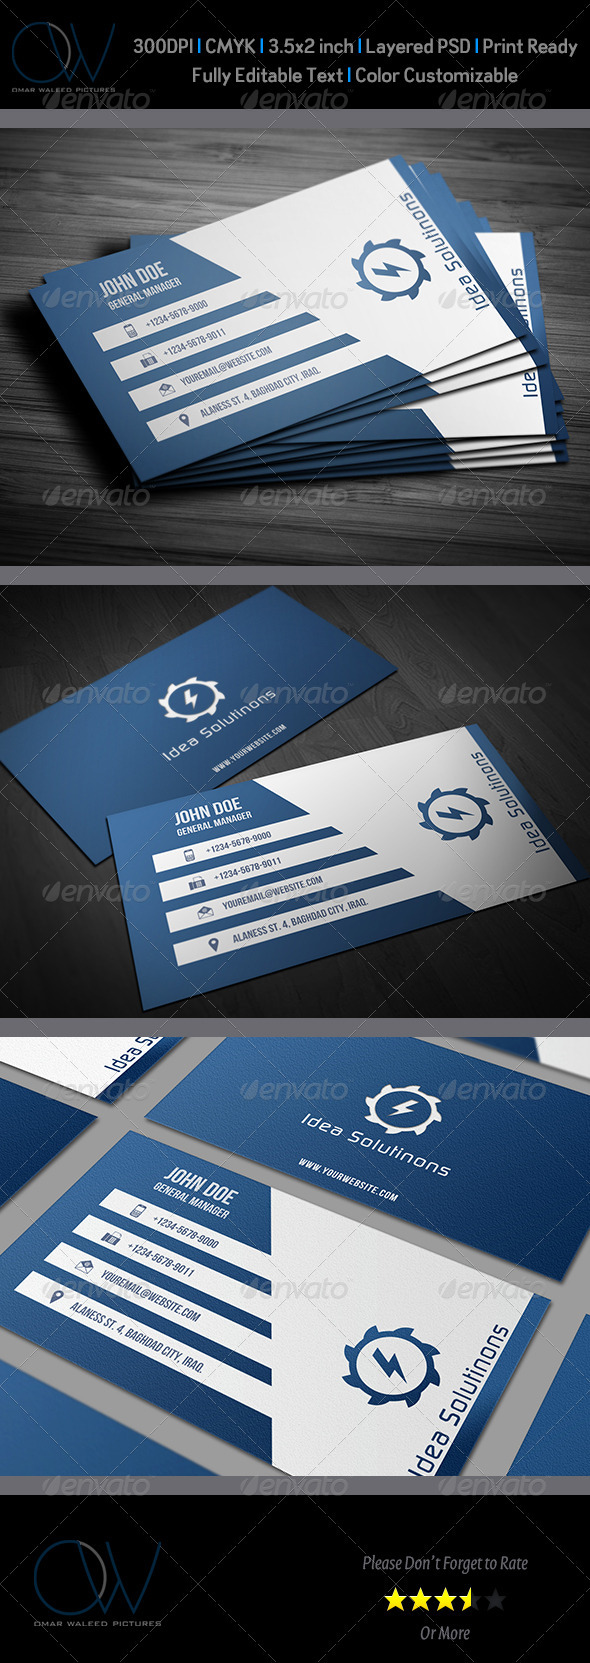 Corporate Business Card Vol.10 - Corporate Business Cards